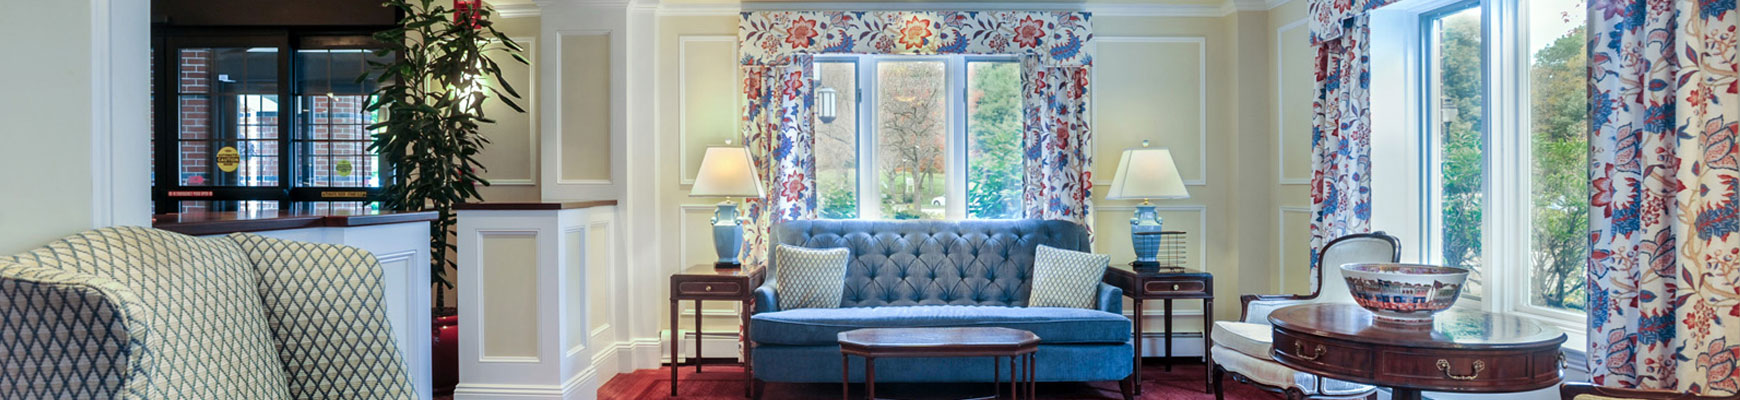 A floral and blue themed community room at Fox Hill Village senior living community in Massachusetts